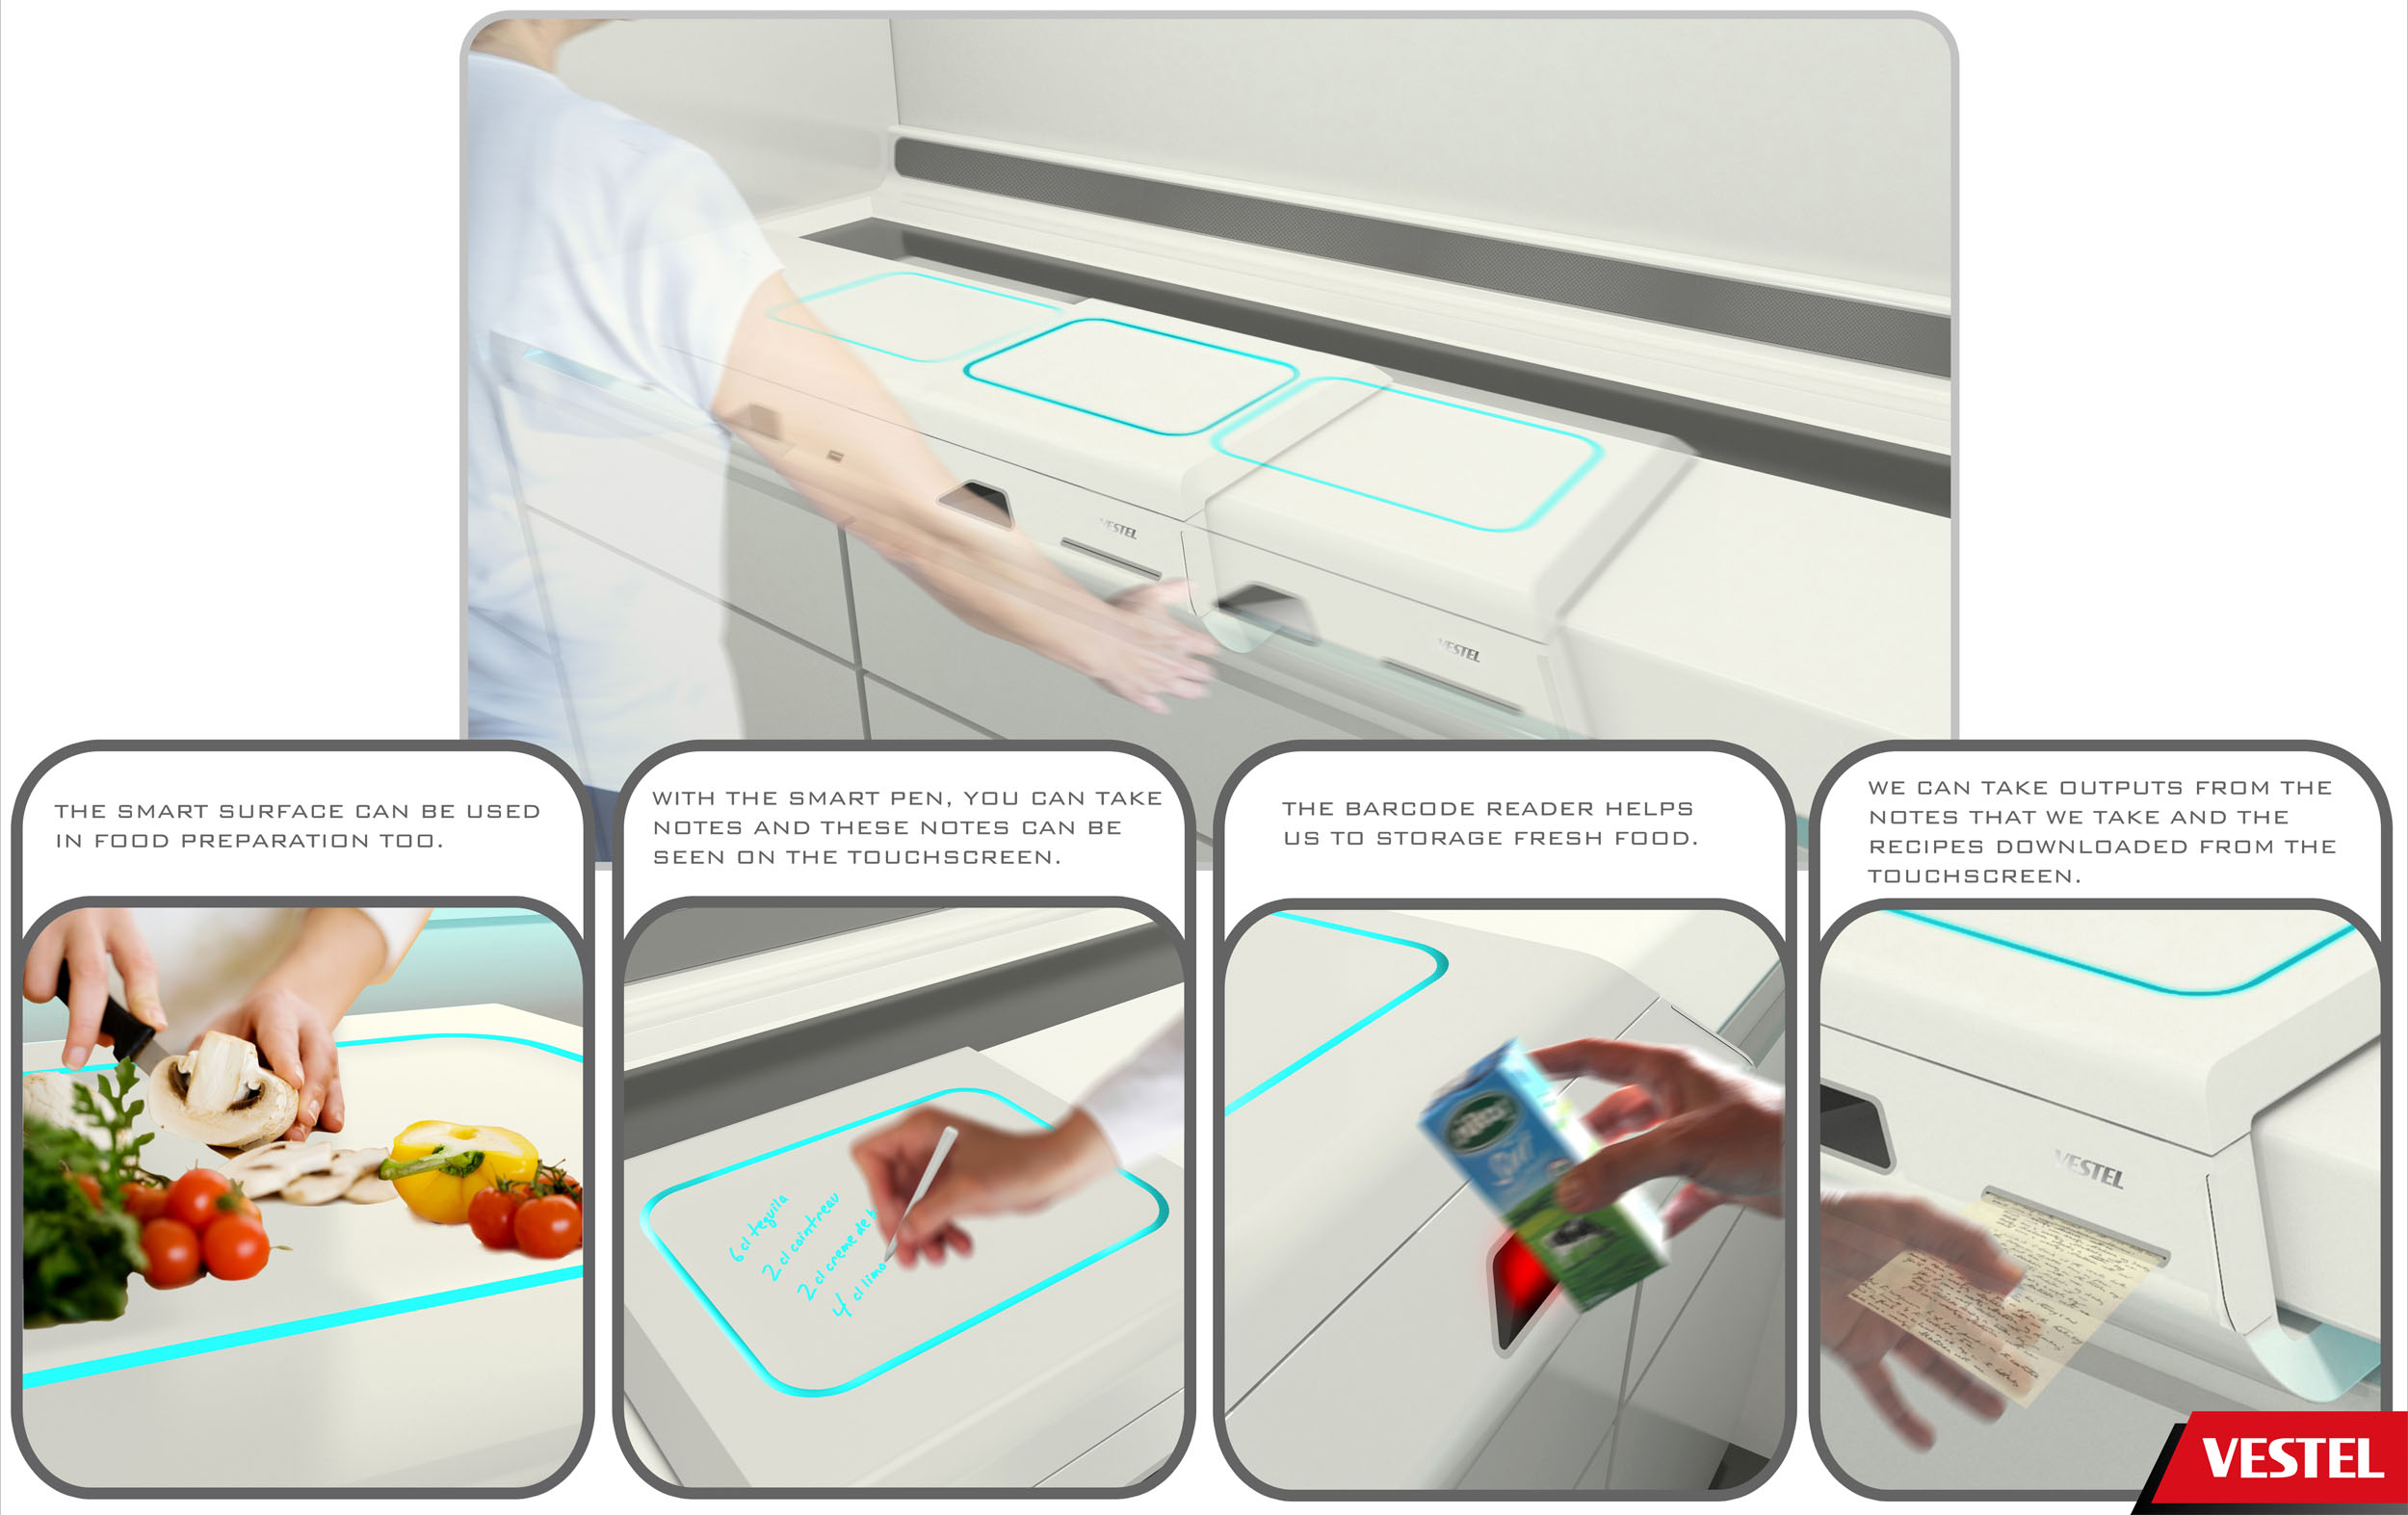 Vestel Assist Project Introduces You to Smart Kitchen System